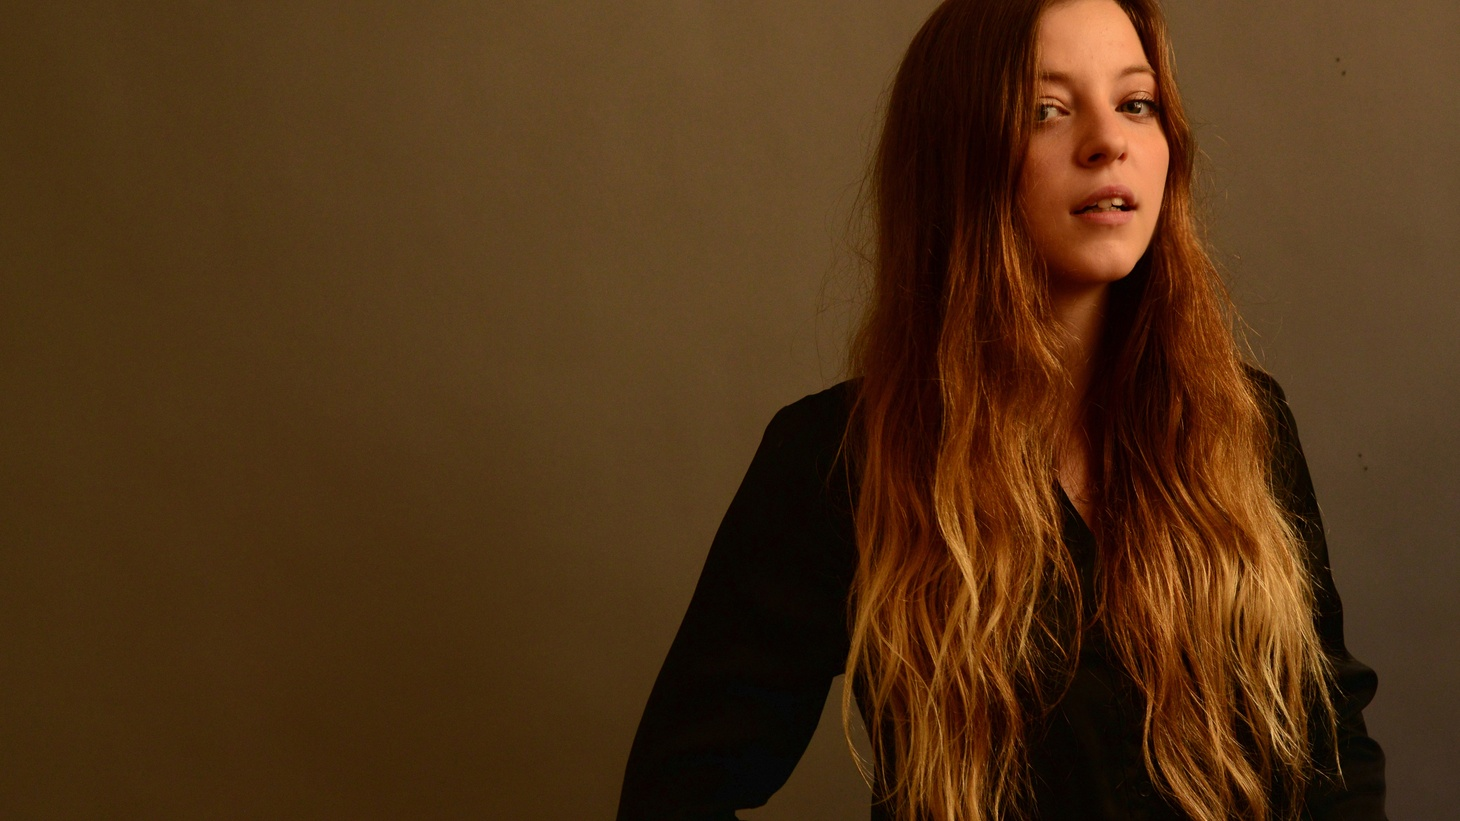 Jade Bird is an emerging teenage British singer who, while growing up, looked to strong female role models, including her mother, then became captivated by iconic songwriters like Patti Smith and Loretta Lynn.